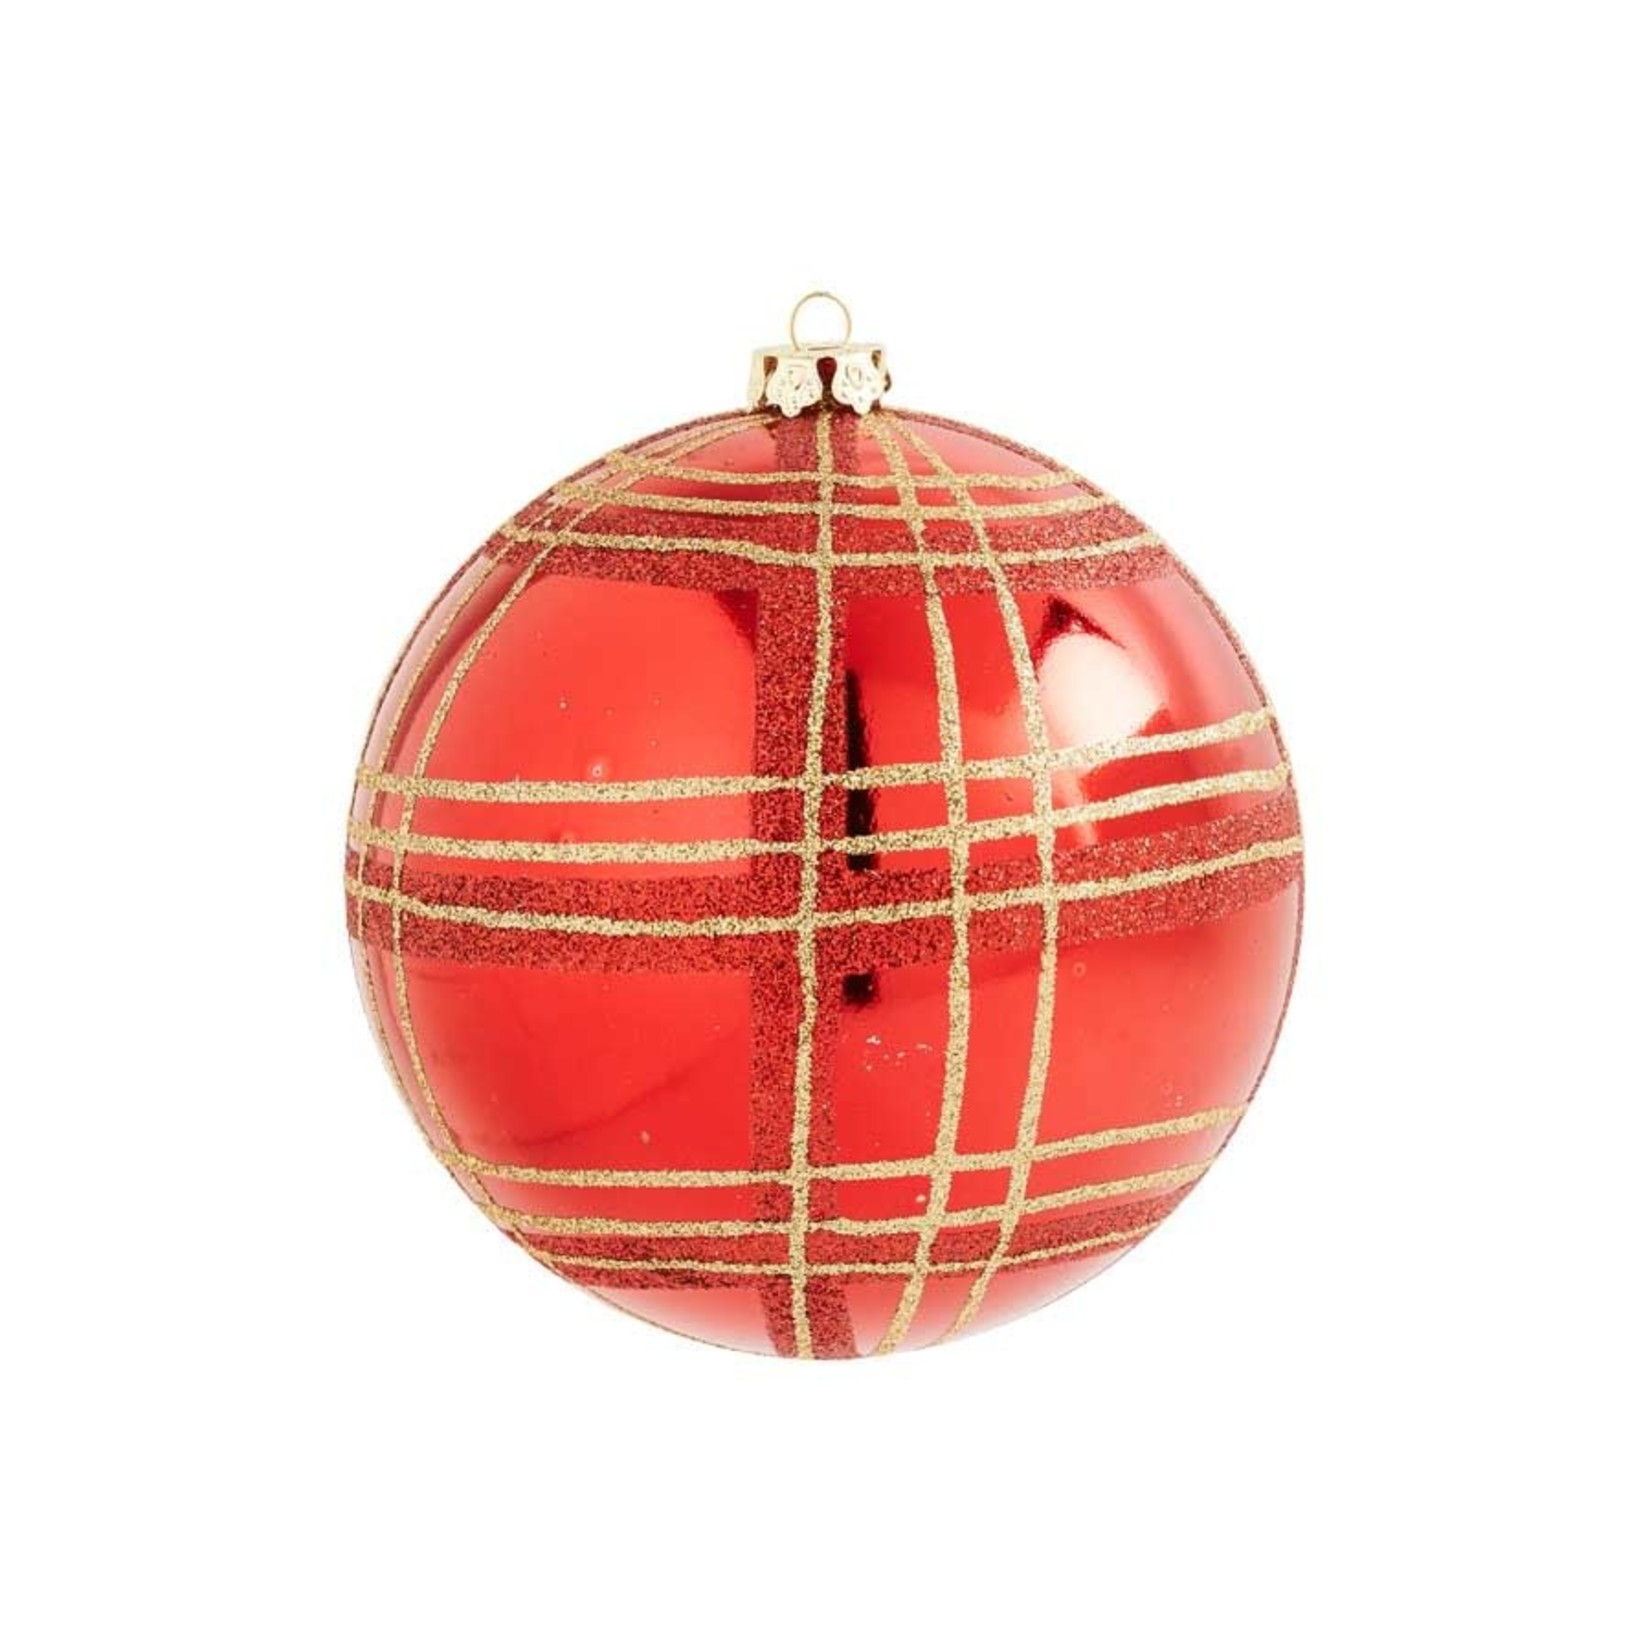 4 inch Red Shatterproof Ornament with Gold Plaid